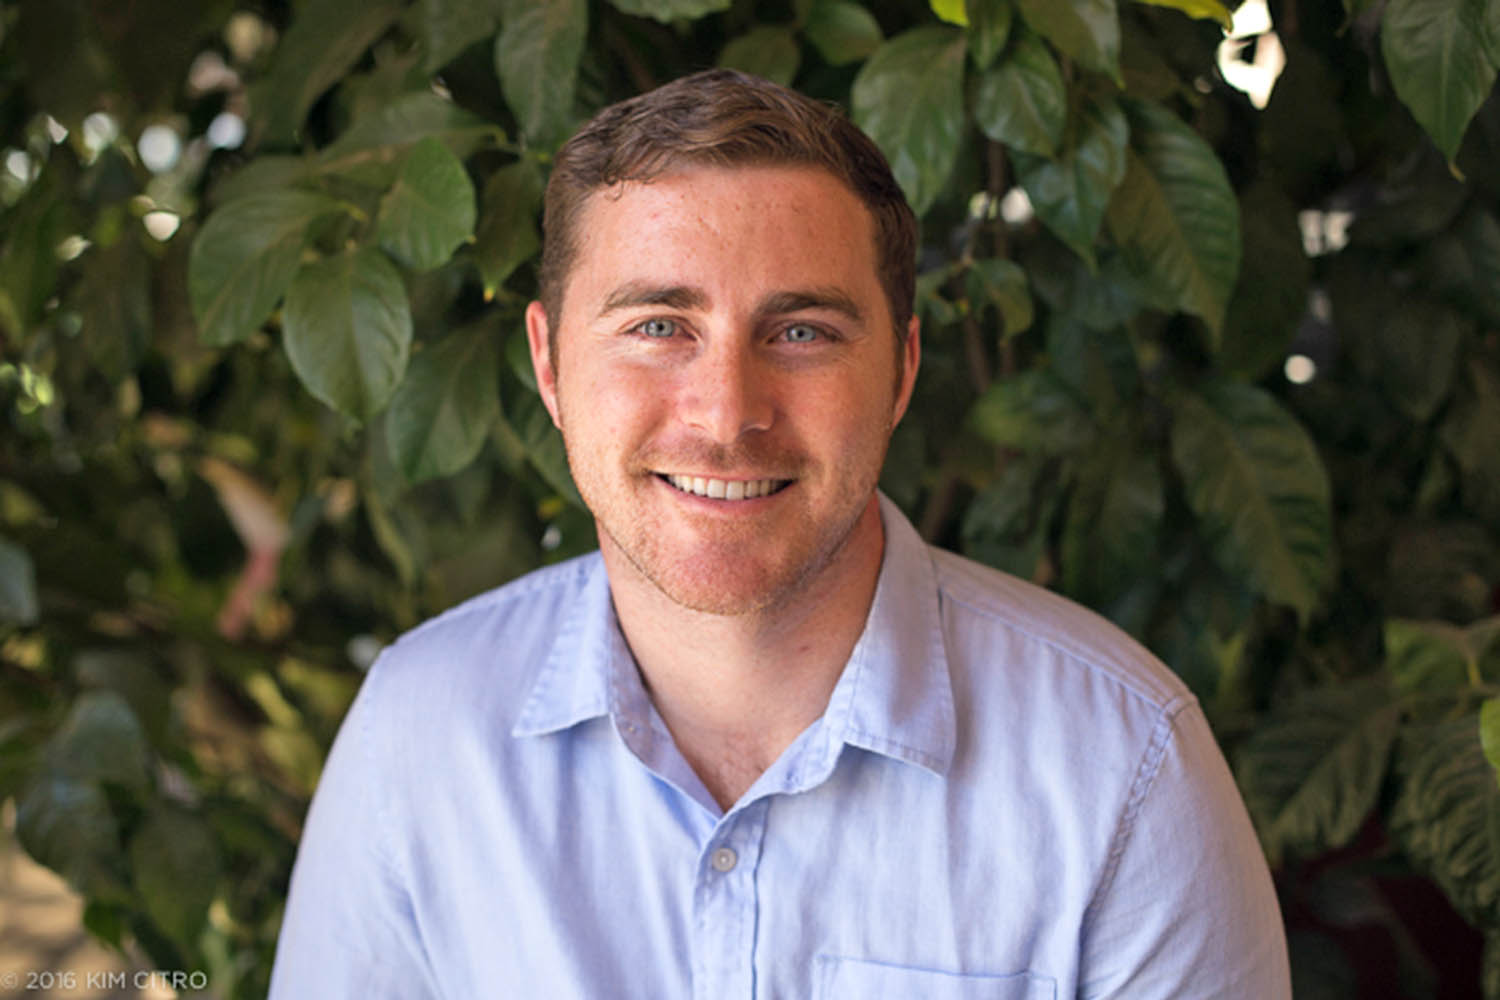 Kyle Beyer - Direct to Consumer Manager